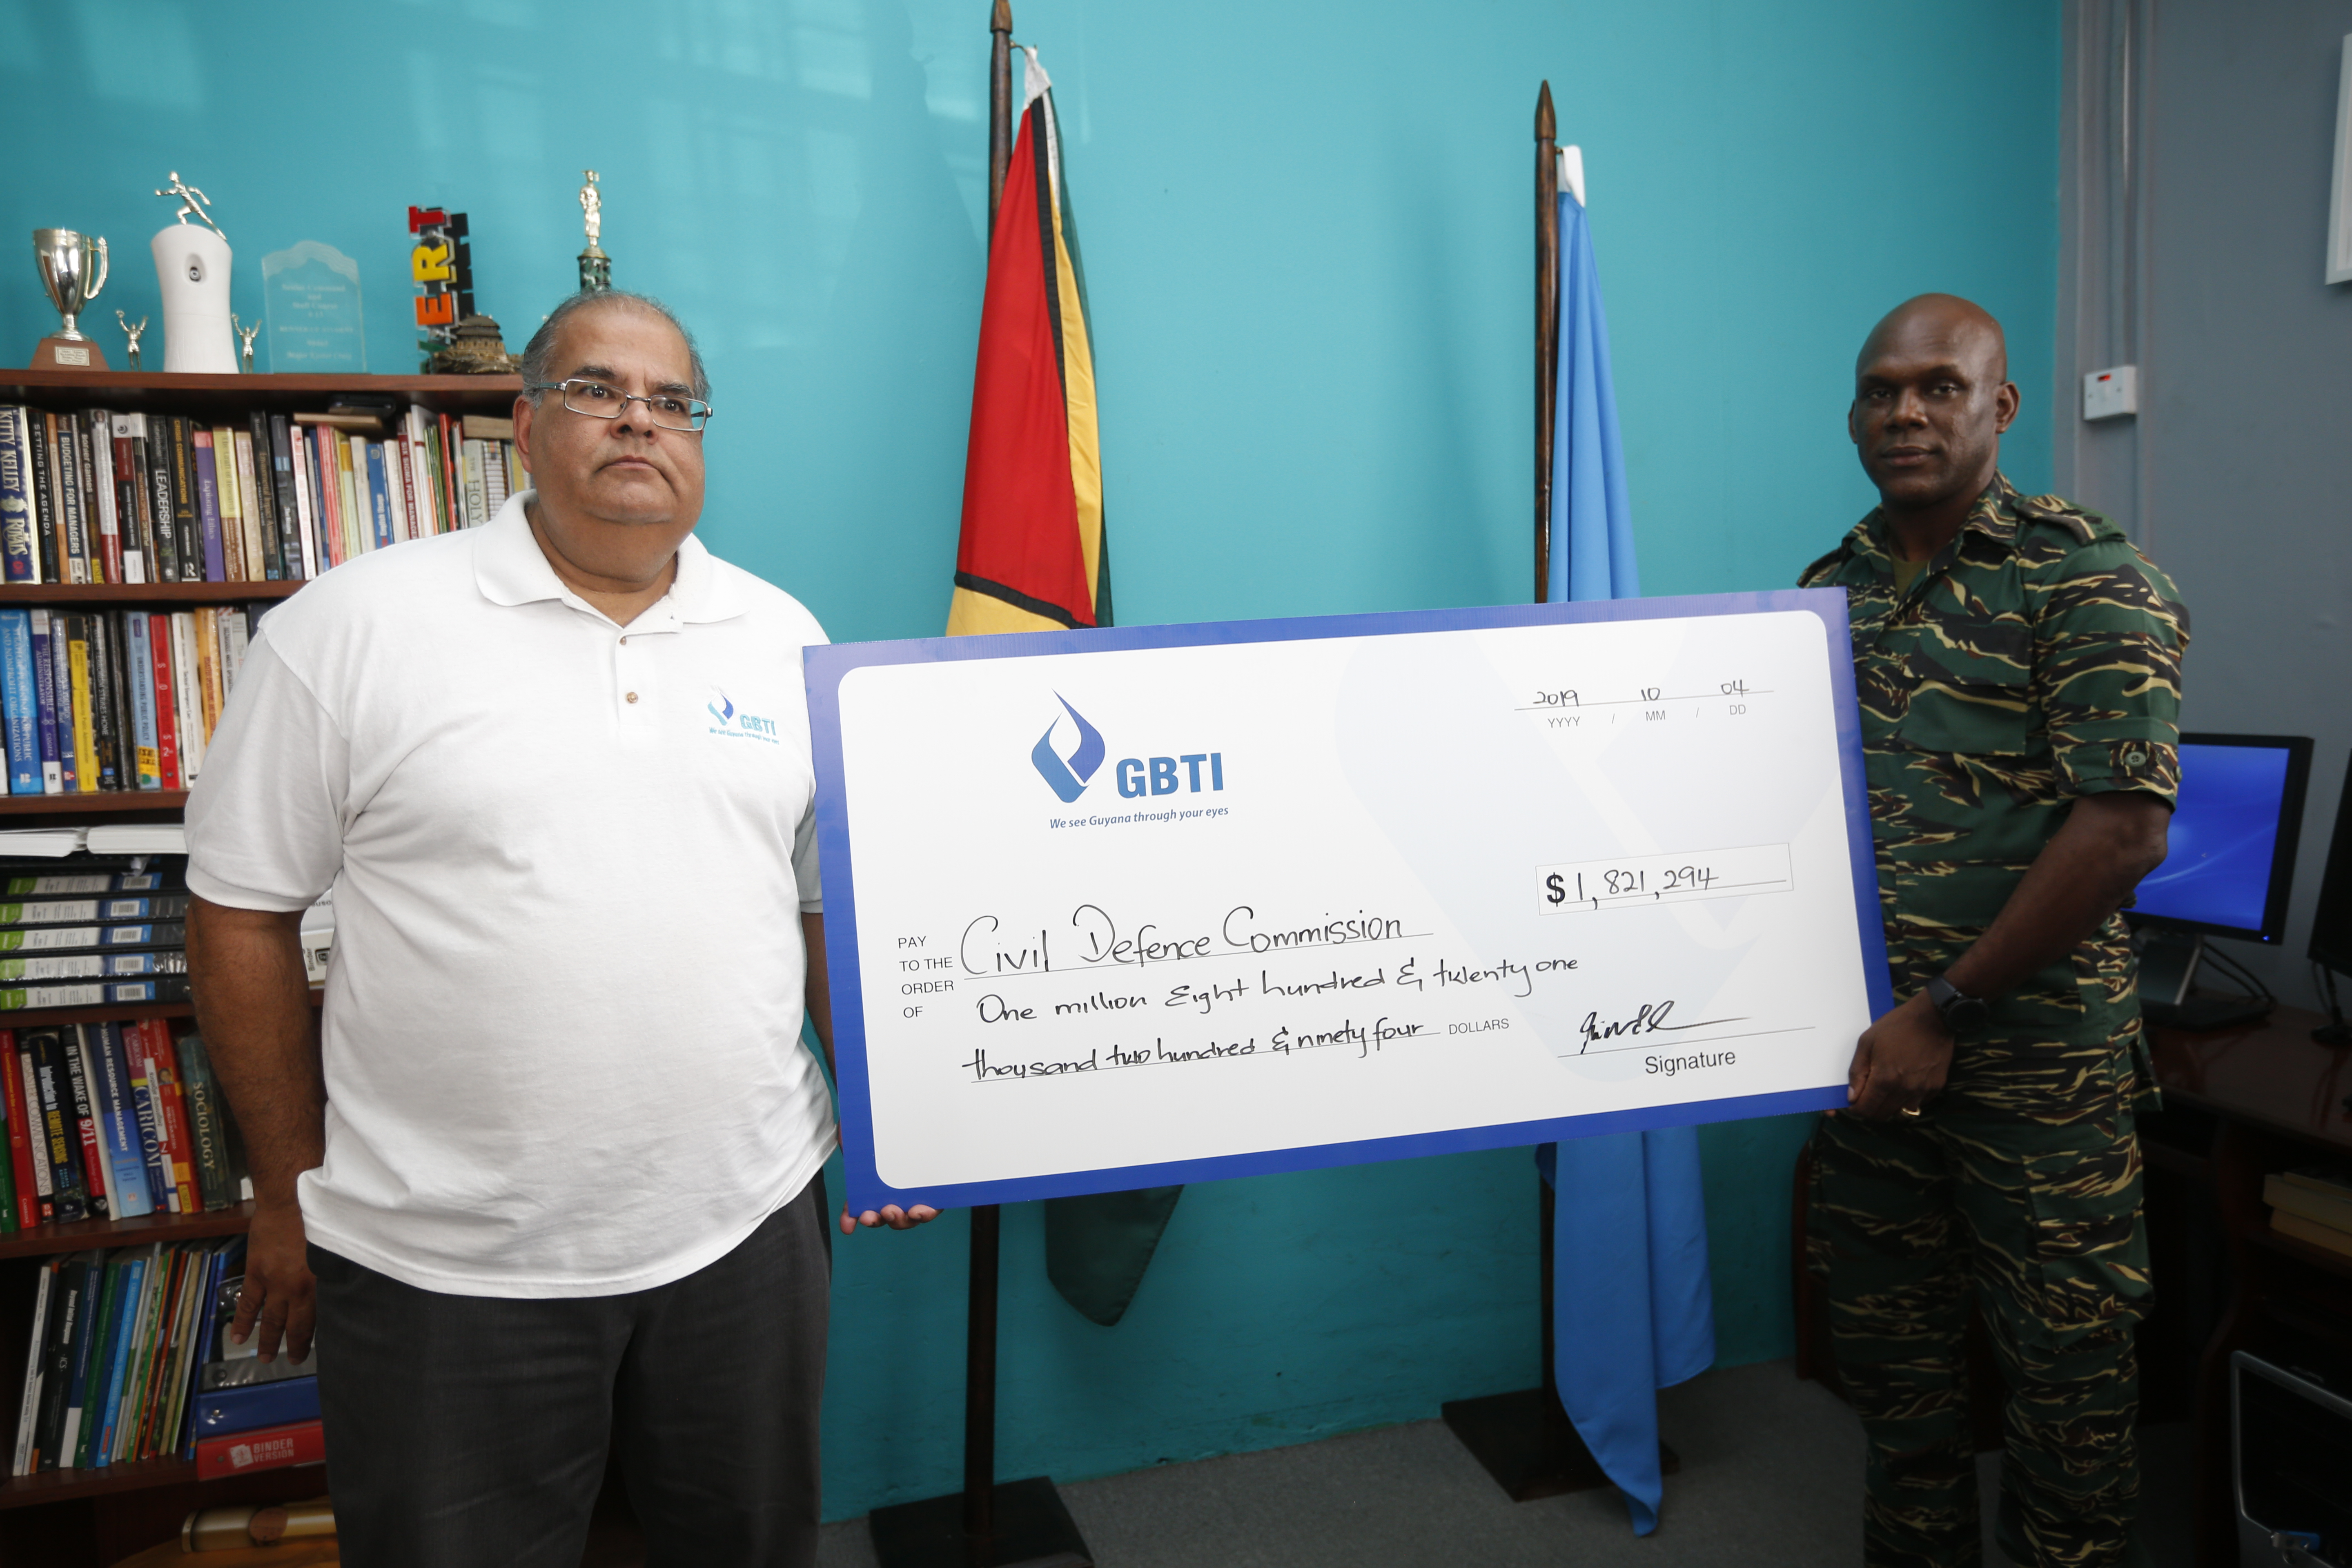 GBTI Hurricane Fund musters close to $2M for Bahamas Relief